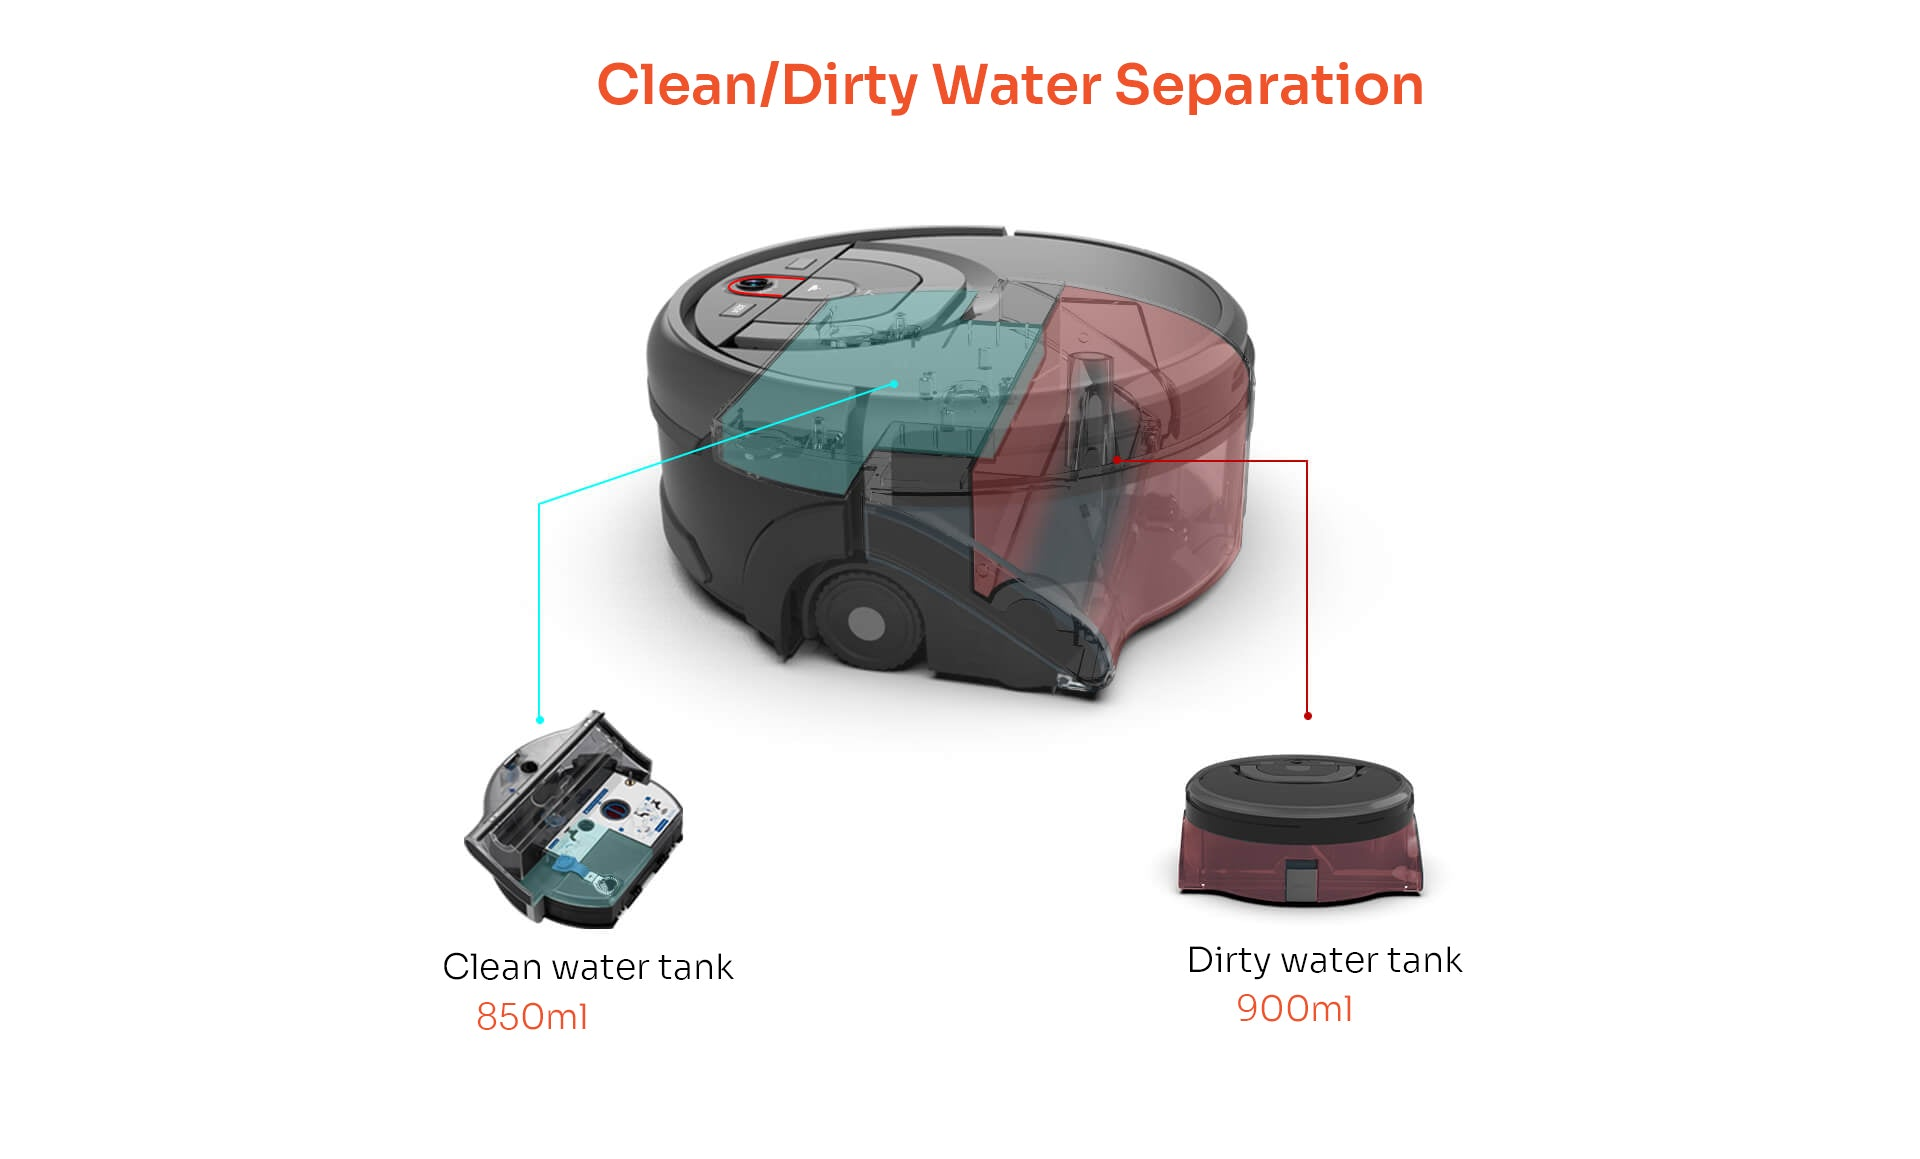 Clean/dirty water separation